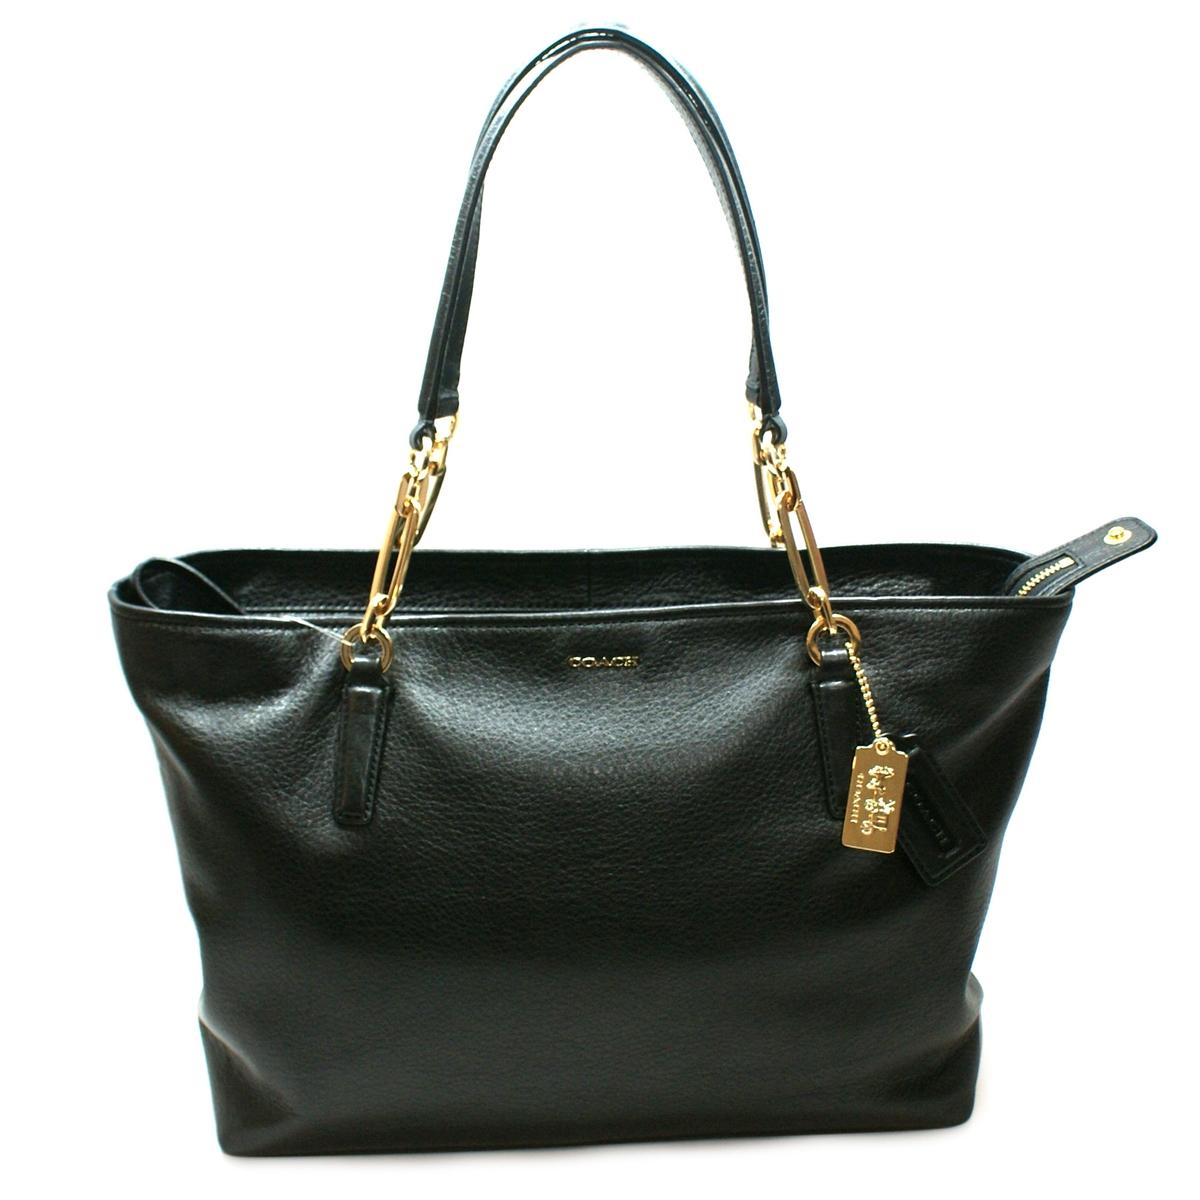 Coach Madison Leather East/ West Tote Bag Black #26769 : Coach 26769